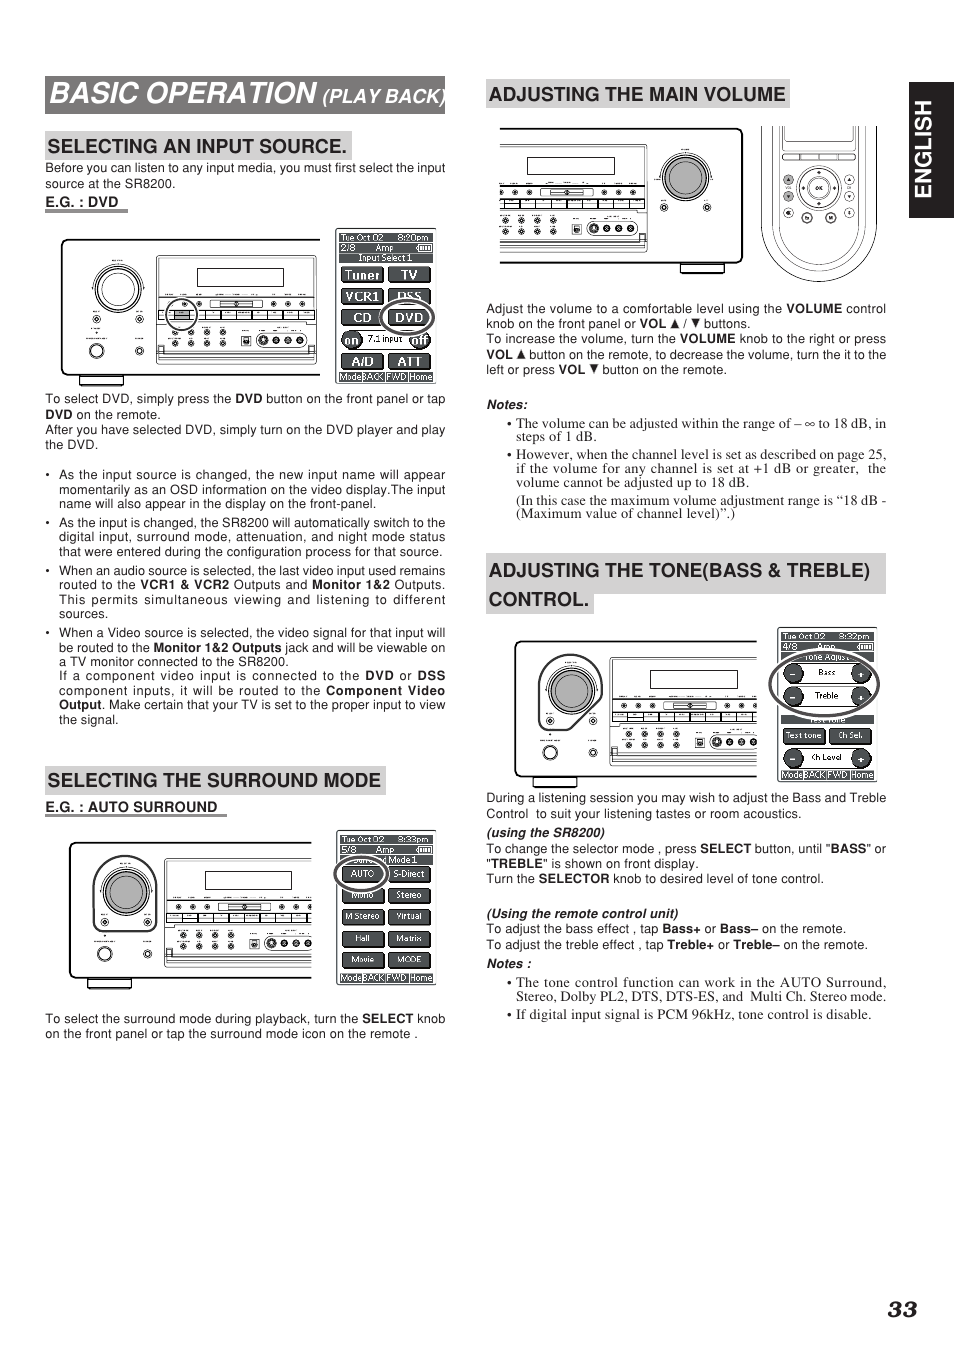 Basic Operation 33 English Play Back Selecting An Input Source Treble Tone Control Marantz Sr8200 User Manual Page 37 53